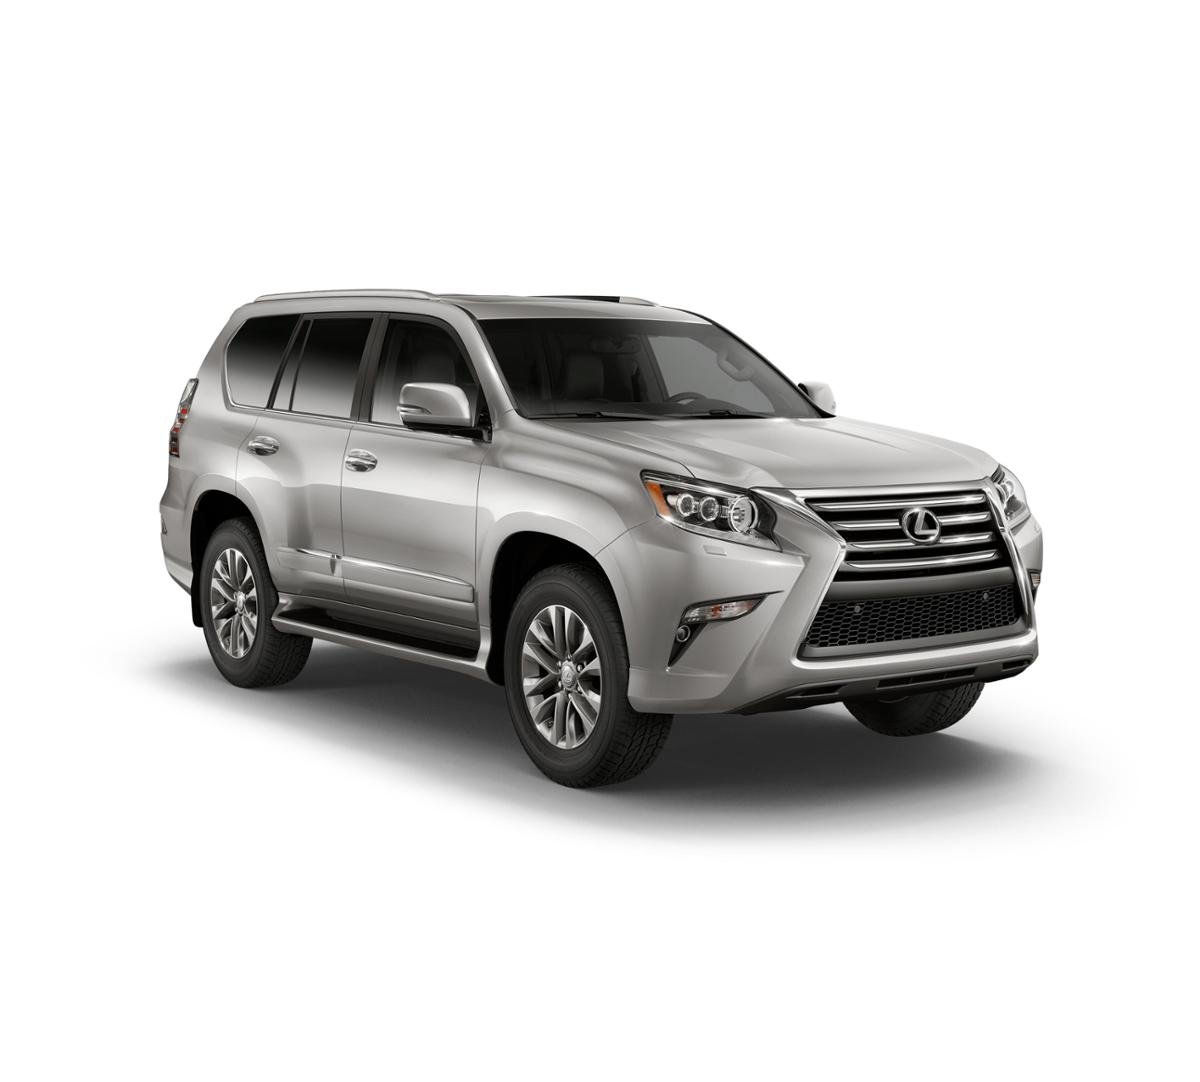 2018 Lexus GX 460 Vehicle Photo in Lakeway, TX 78734